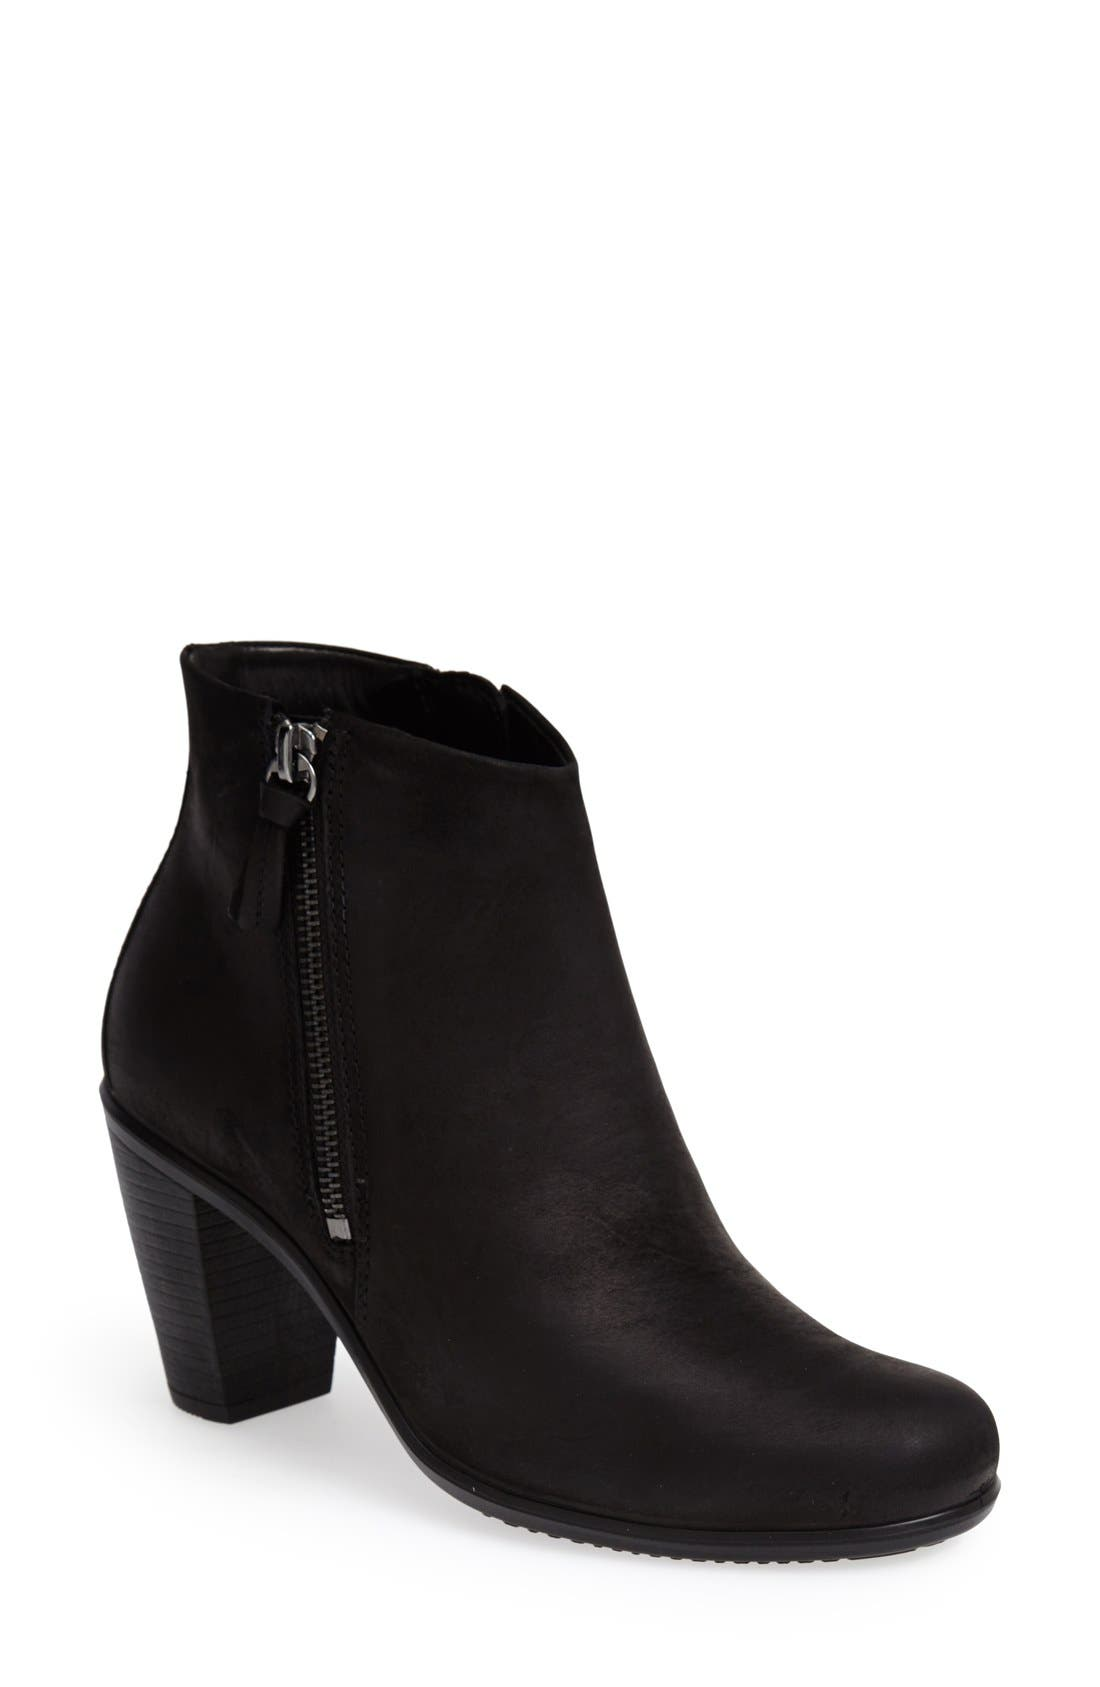 Main Image - ECCO 'Touch 75' Ankle Bootie (Women)